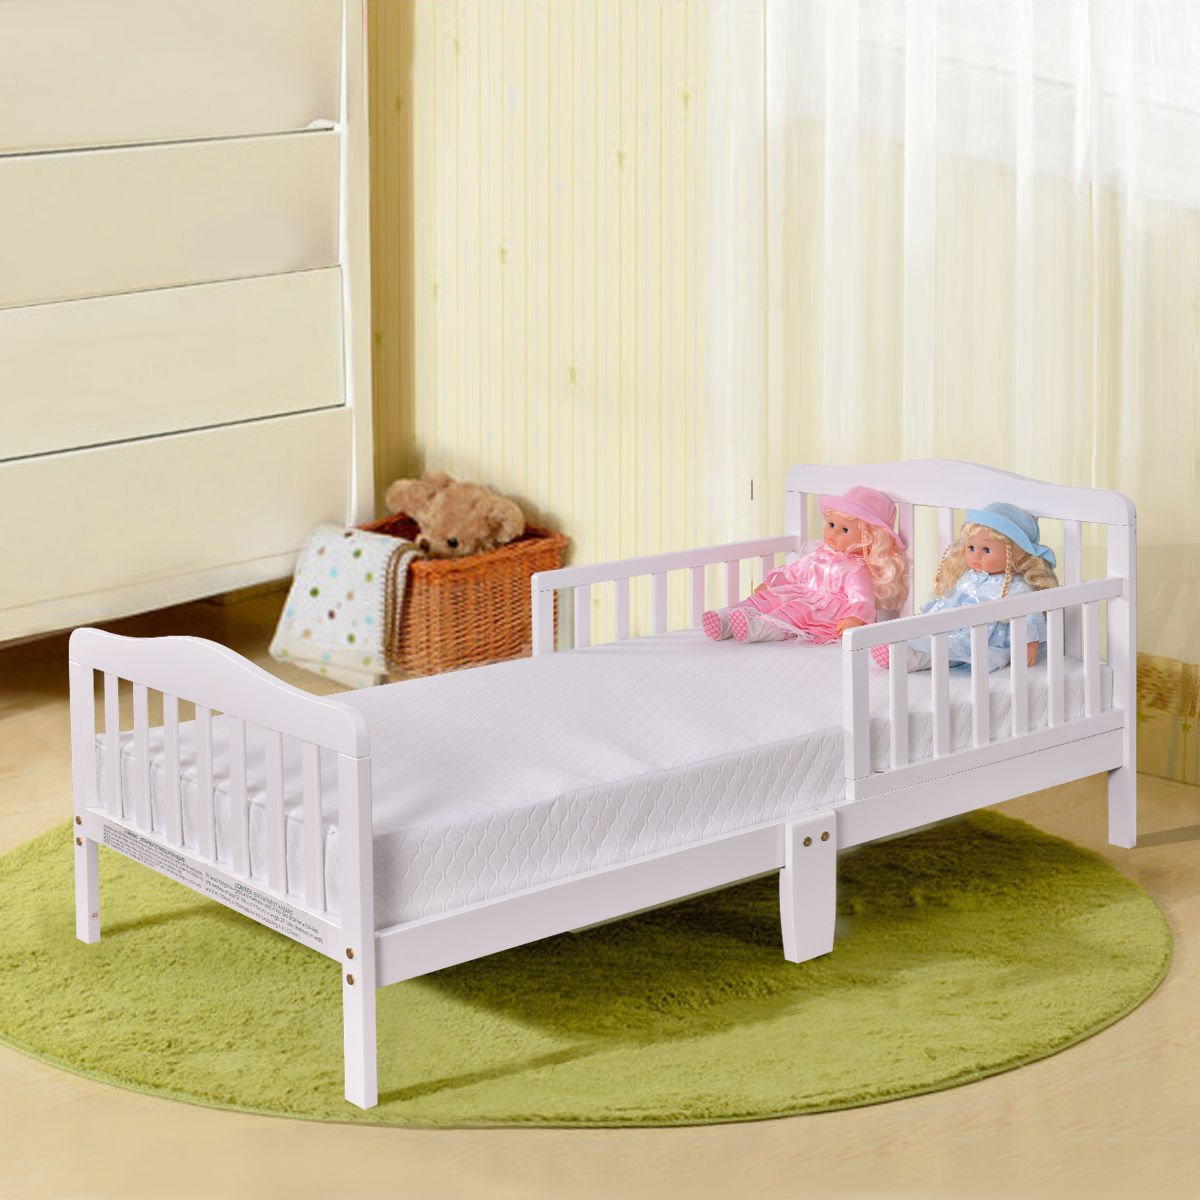 Amazon com ggonline baby toddler bed kids children wood bedroom furniture w safety rails white kitchen dining